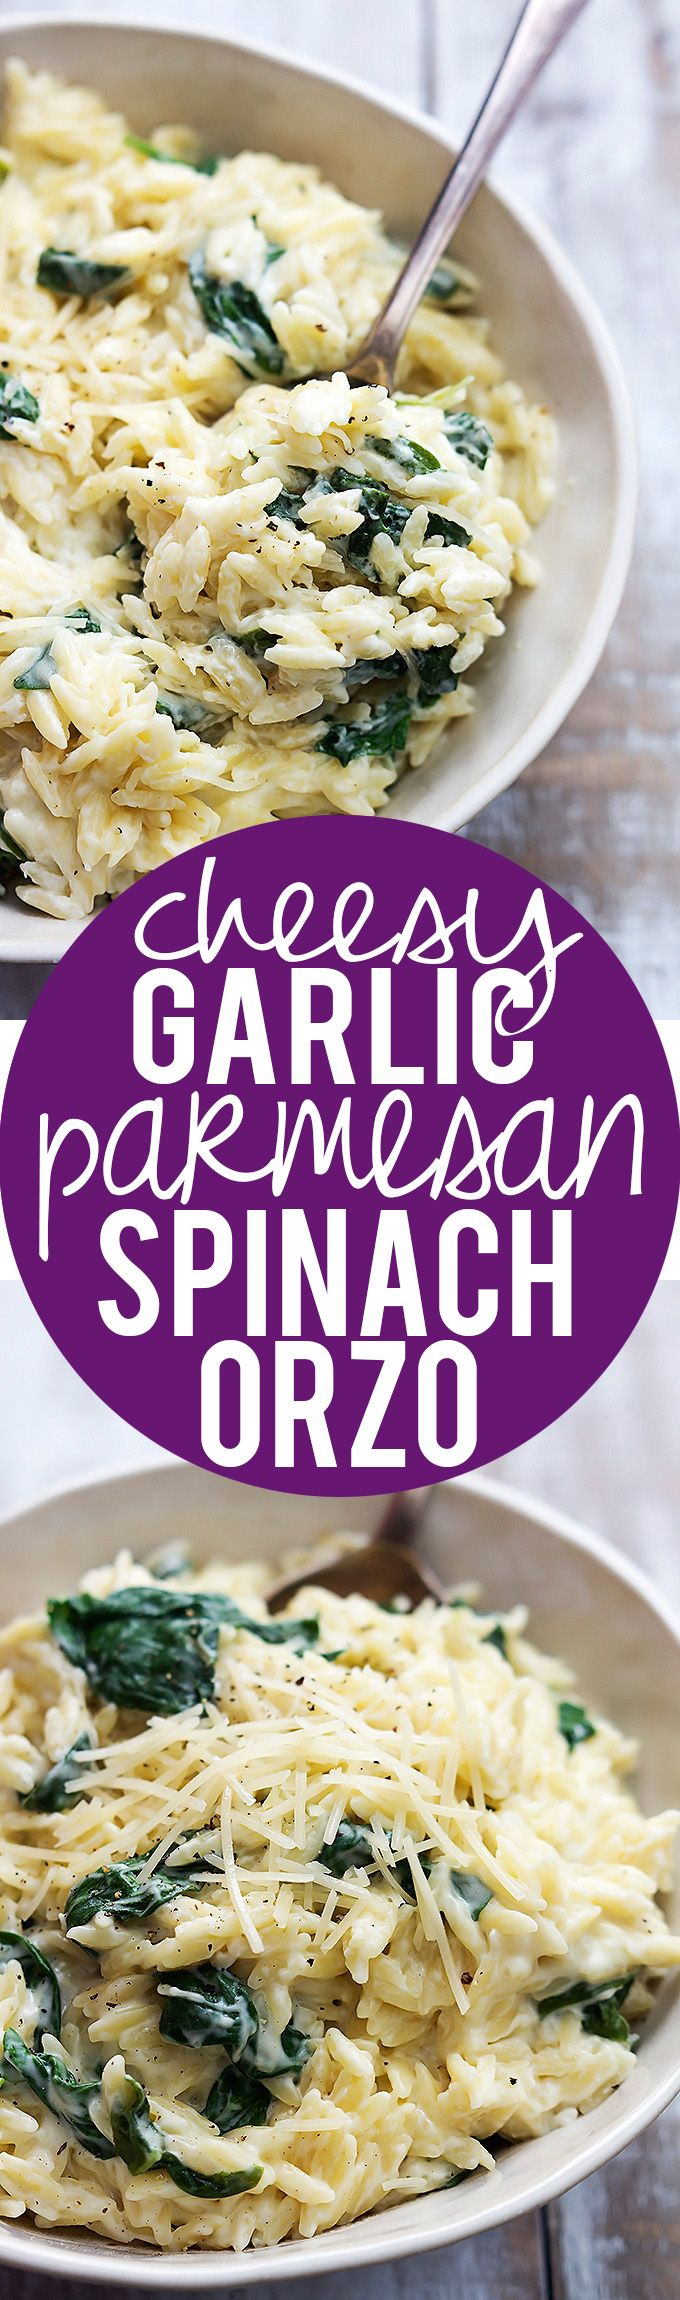 Super creamy and Cheesy Garlic Parmesan Orzo pasta